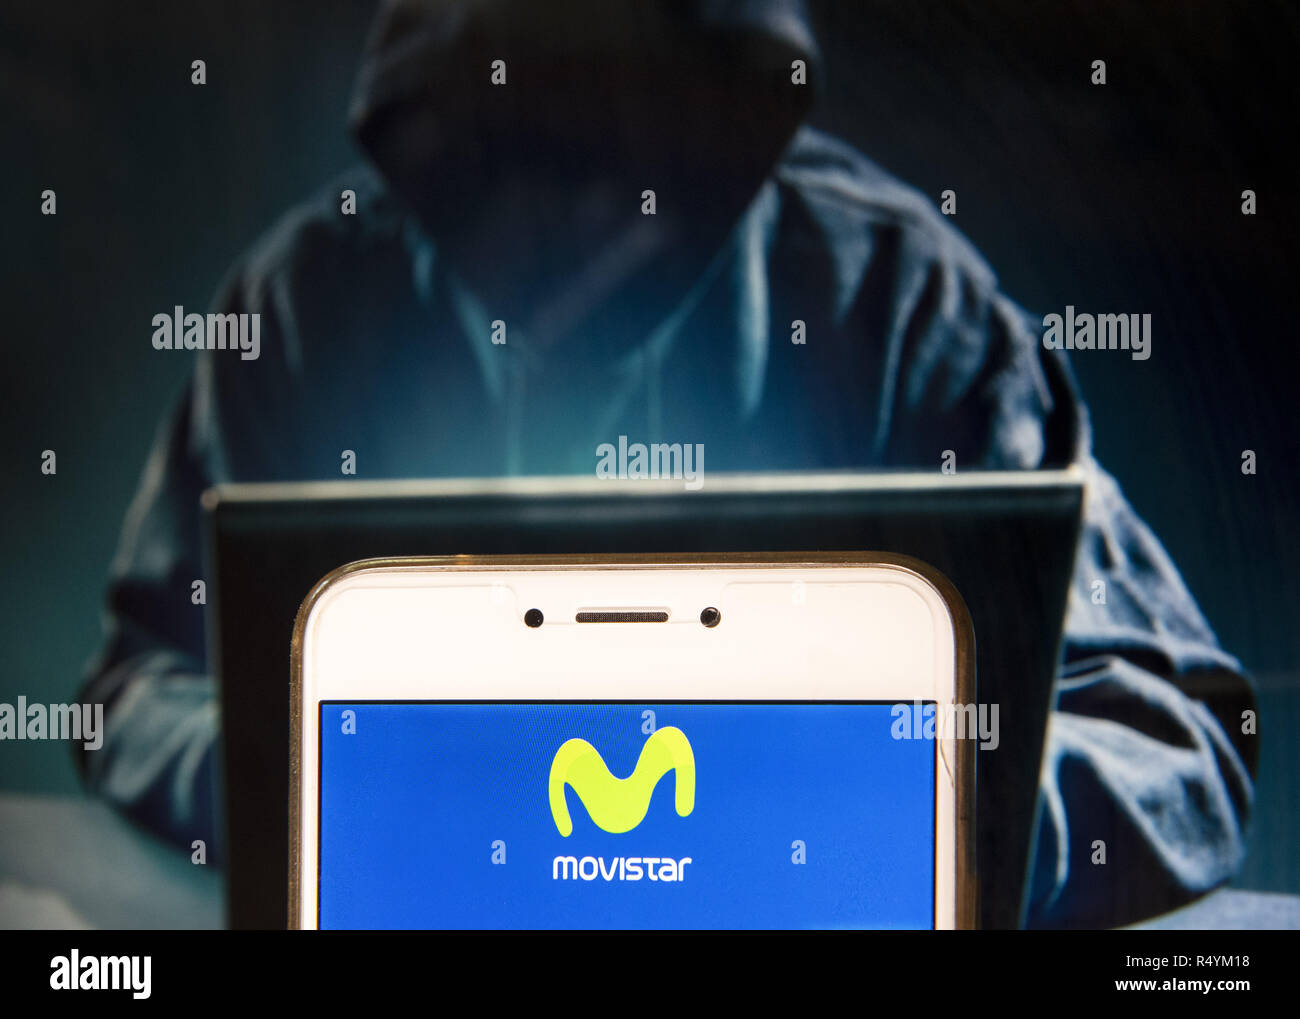 Hong Kong, China. 23rd Nov, 2018. Spanish telecommunications brand owned by Telefonica and largest mobile phone operator, Movistar, logo is seen on an Android mobile device with a figure of hacker in the background. Credit: Miguel Candela/SOPA Images/ZUMA Wire/Alamy Live News - Stock Image